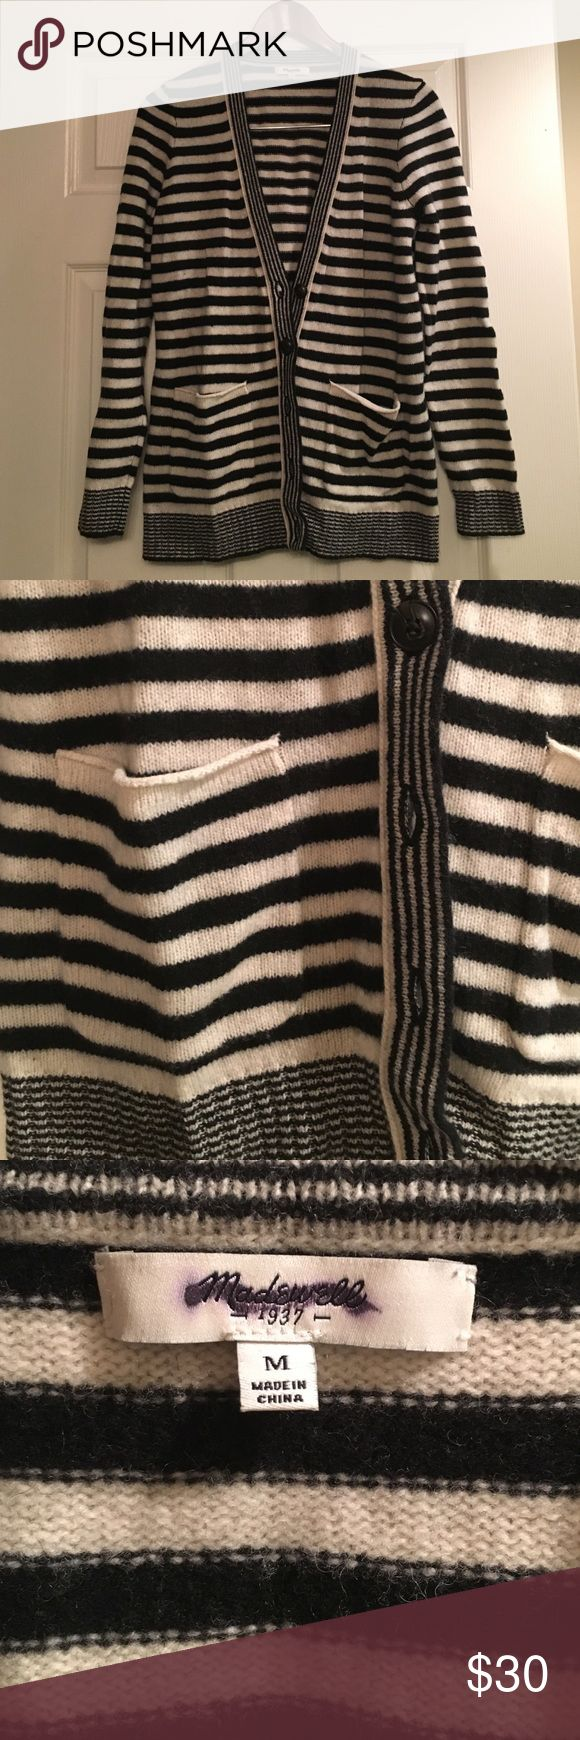 Madewell B/W Striped Grandpa Sweater Madewell size M black and white striped button up sweater. Gently worn, no pilling. Tortoiseshell buttons. Front pockets. Smaller stripe detailing. I love it with a chunky knit scarf and leather jacket! Madewell Sweaters Cardigans